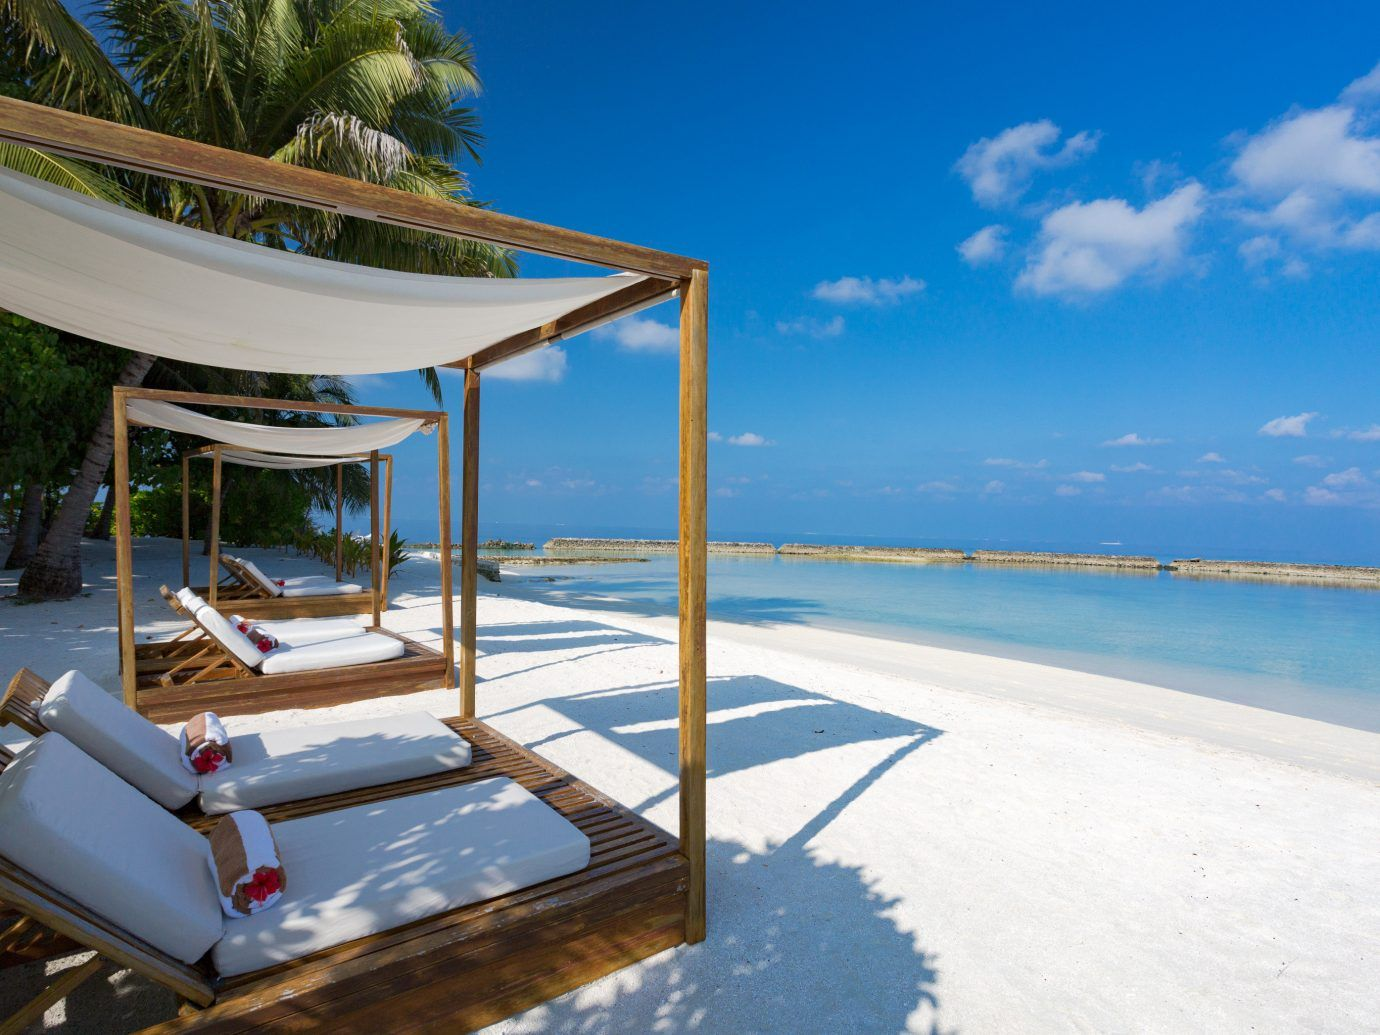 The 9 Best All Inclusive Family Resorts Worth Bragging